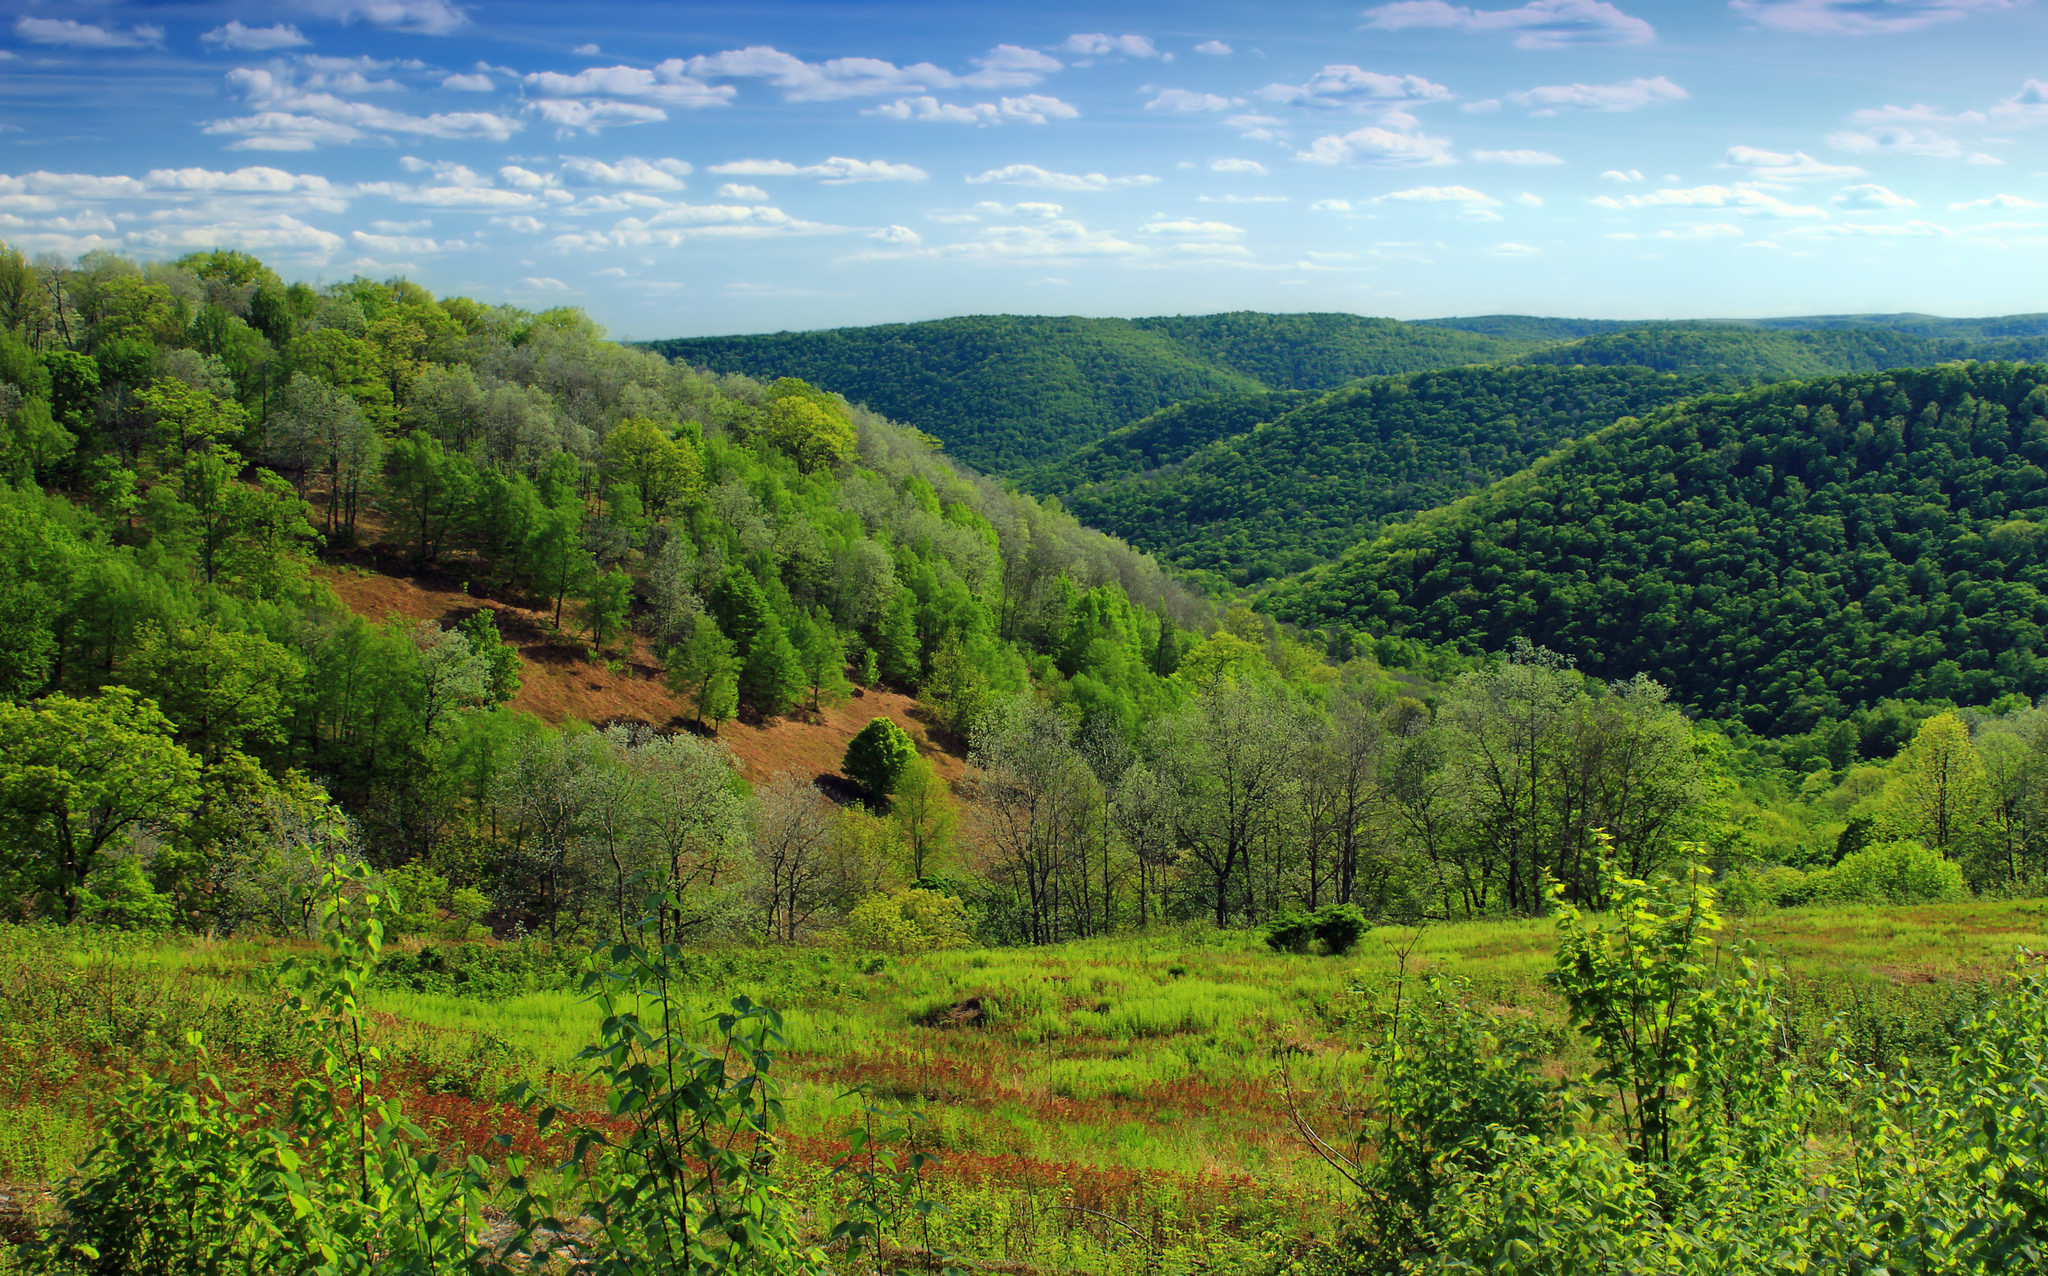 9 Places In Pennsylvania Way Out In The Boonies But So